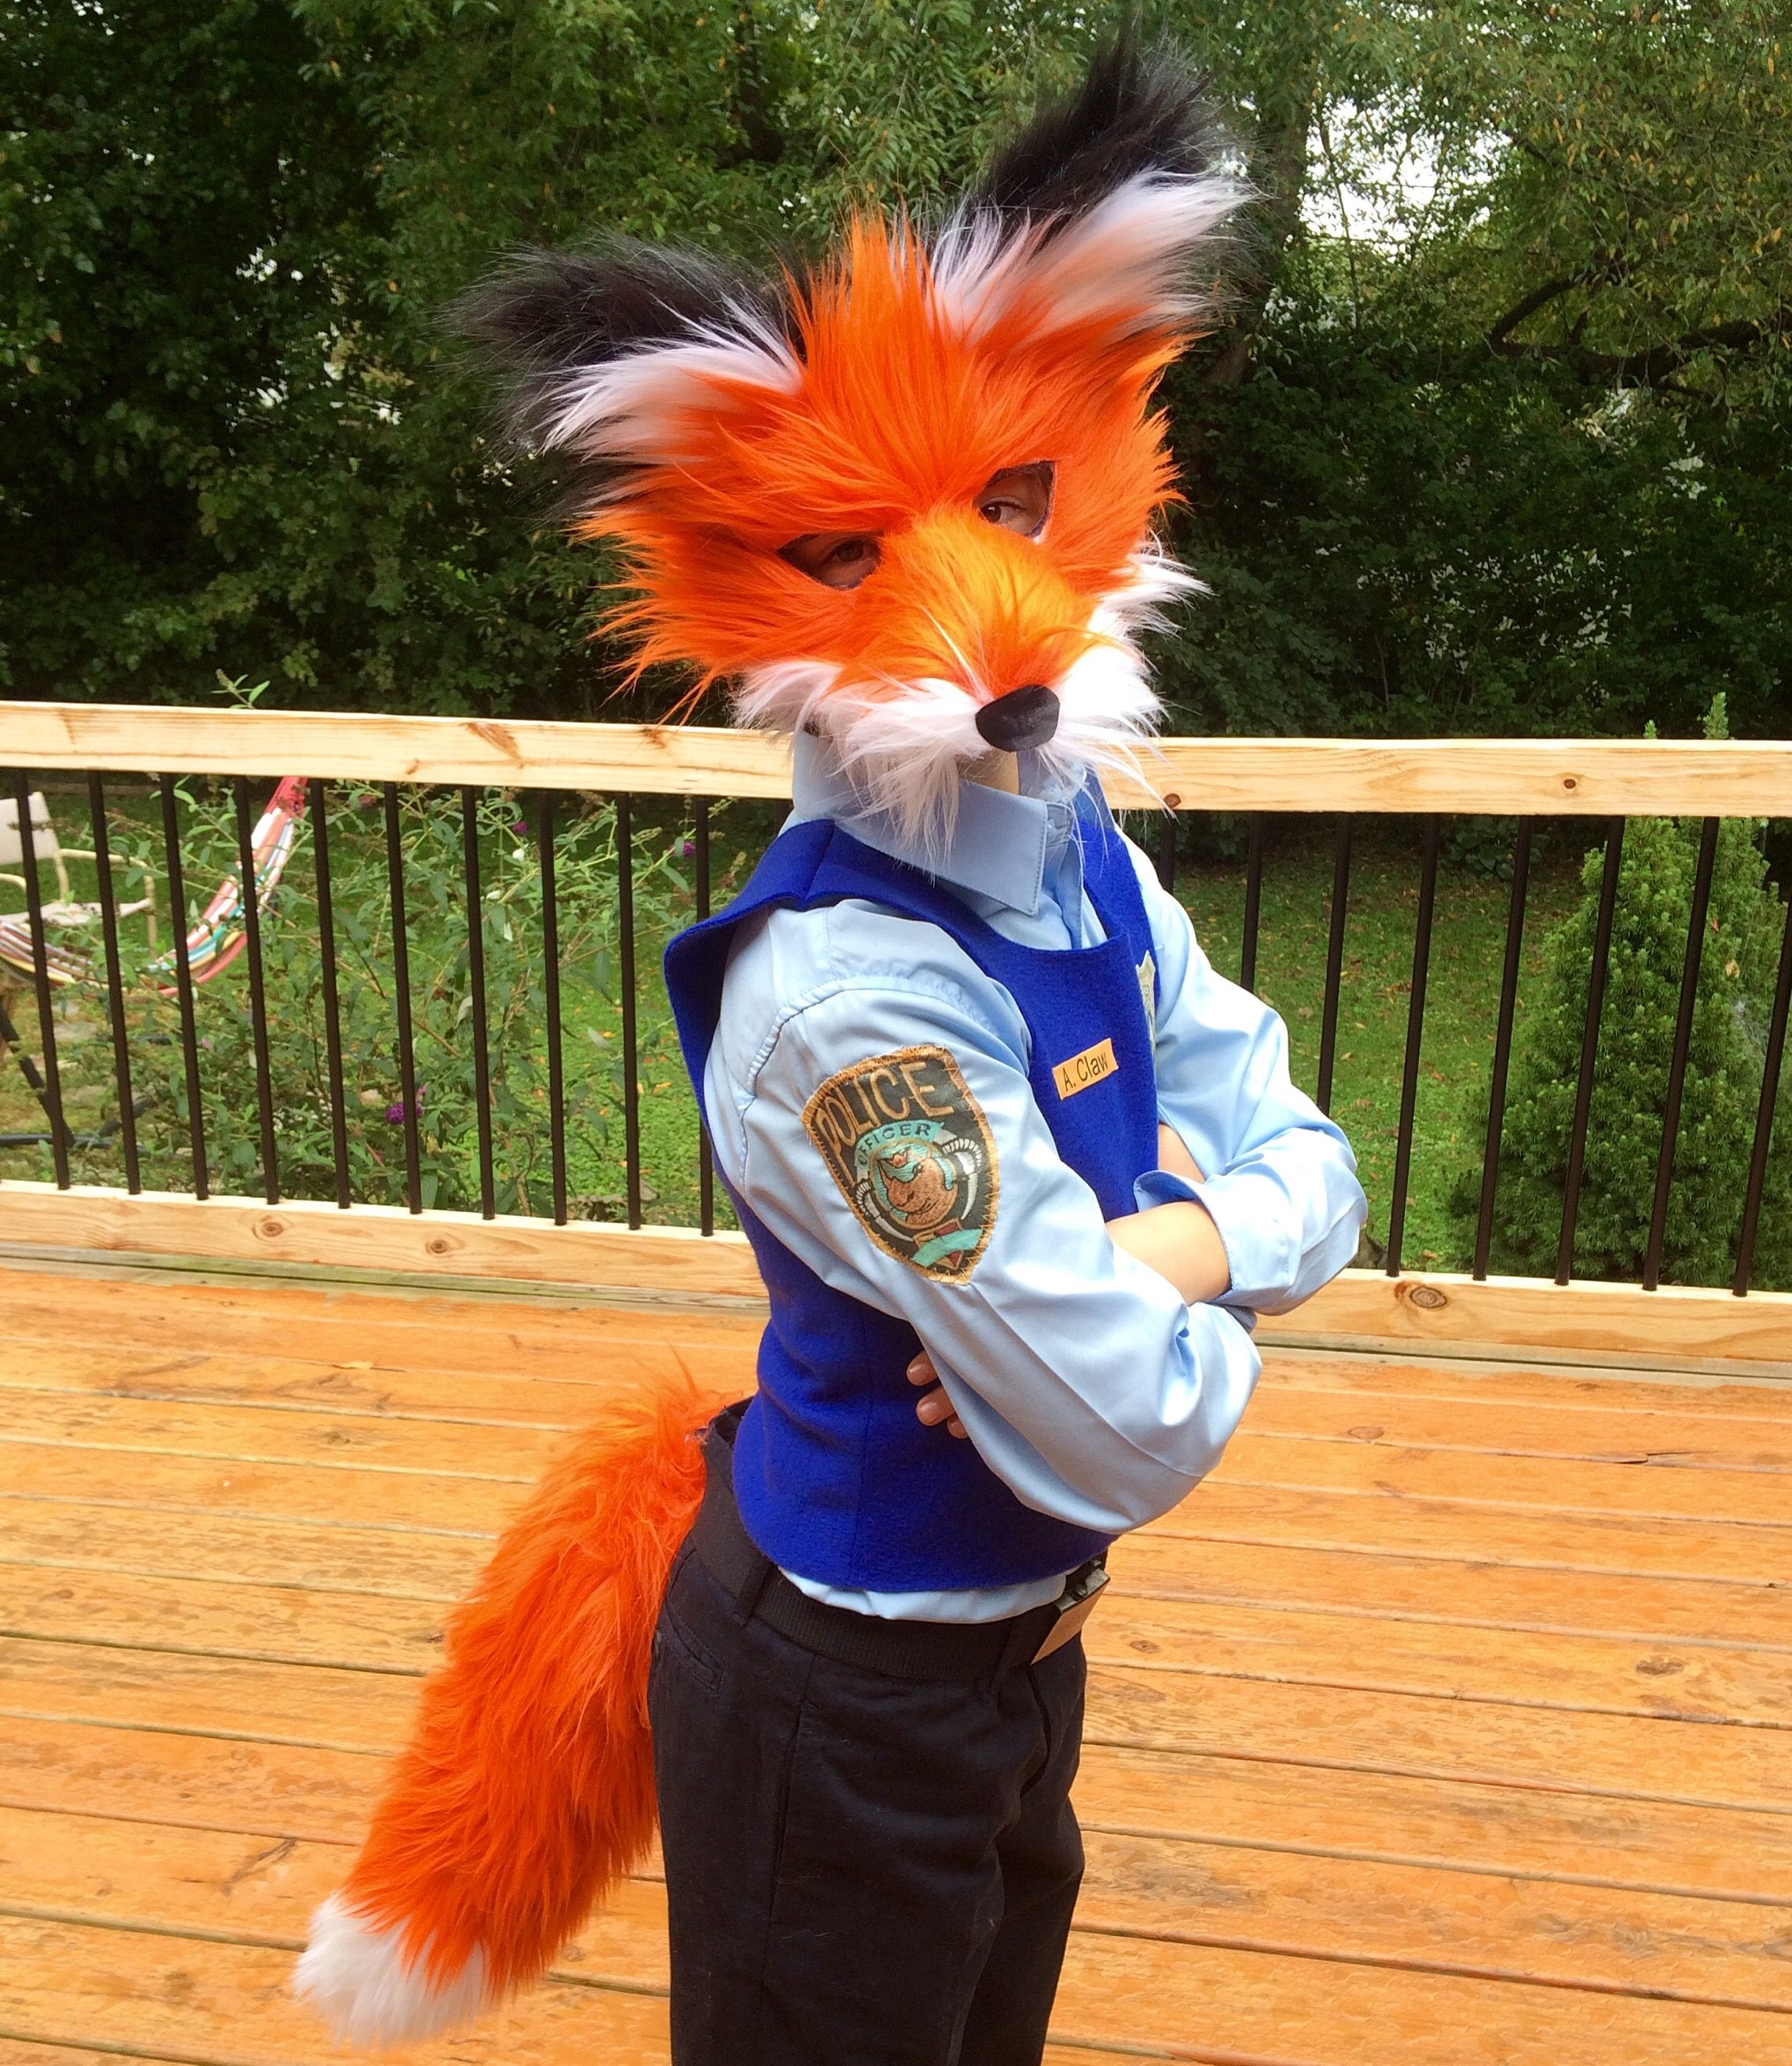 Zootopia Nick Wild Halloween costume with diy police costume, fox tail, and fox mask.